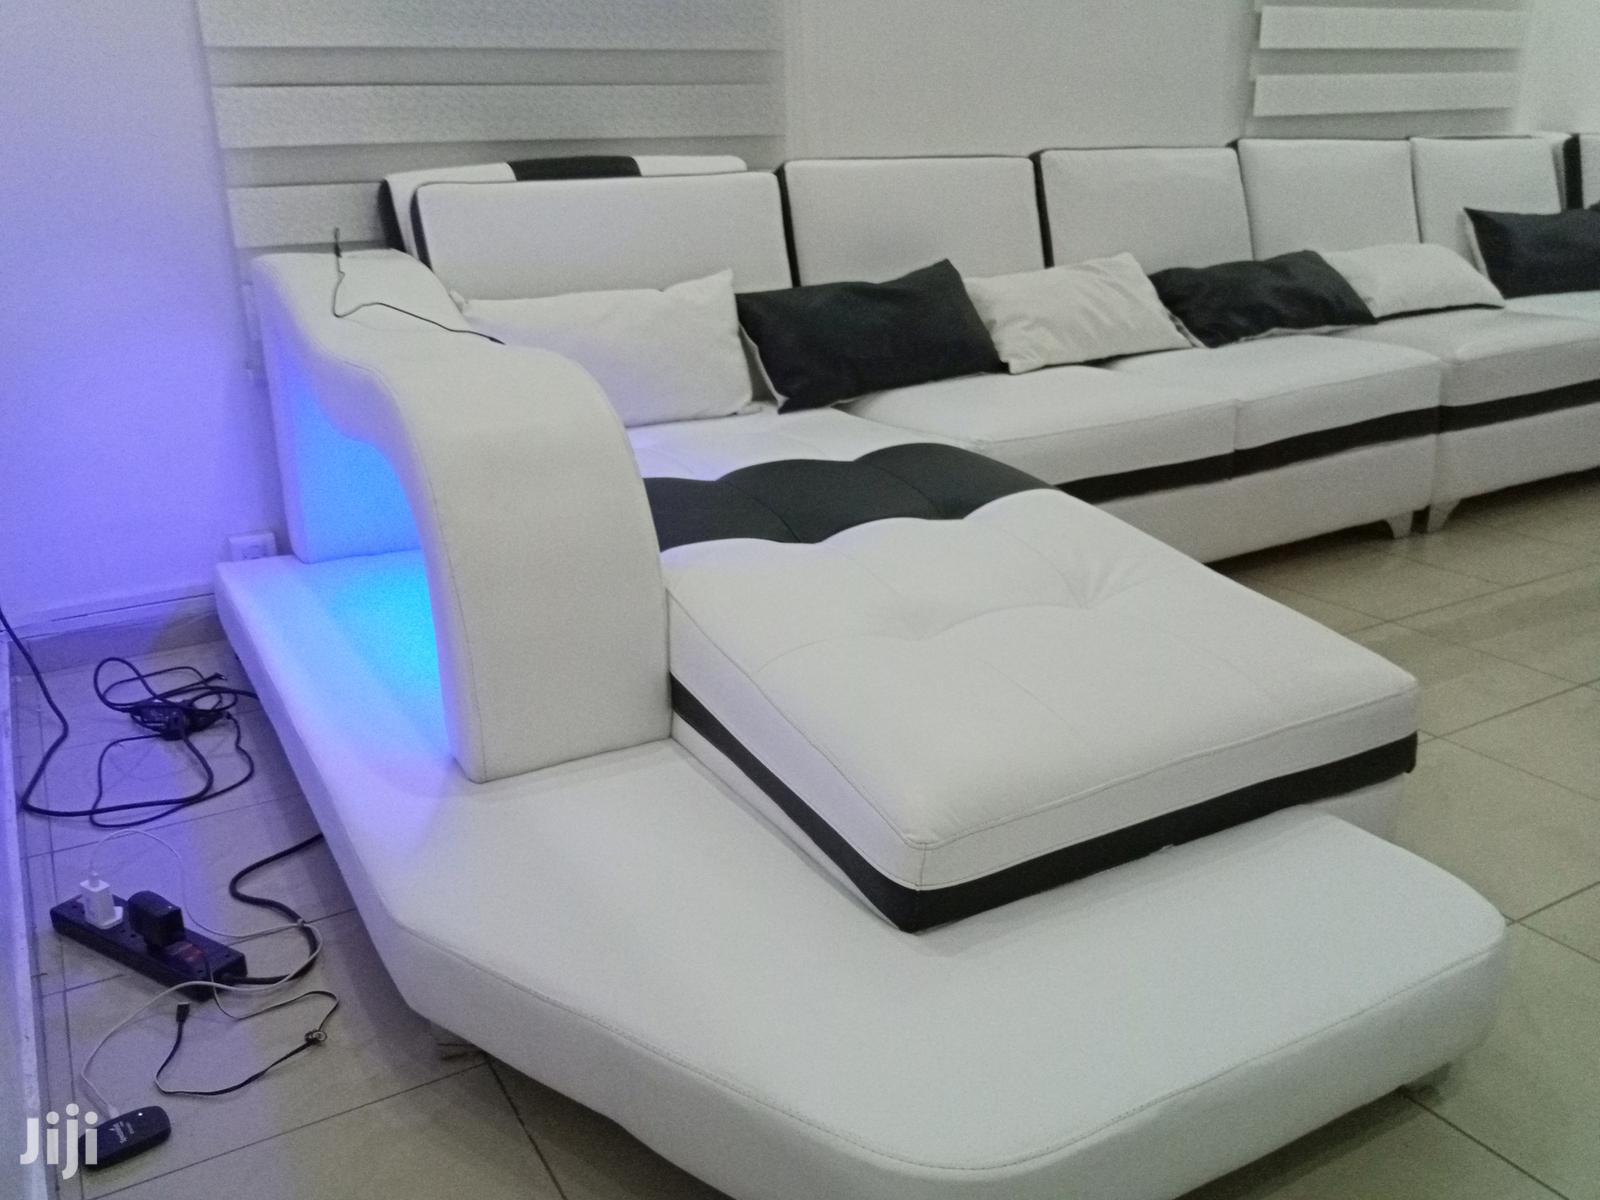 Archive: U Shaoe Sofa With LED Lights And USB Port